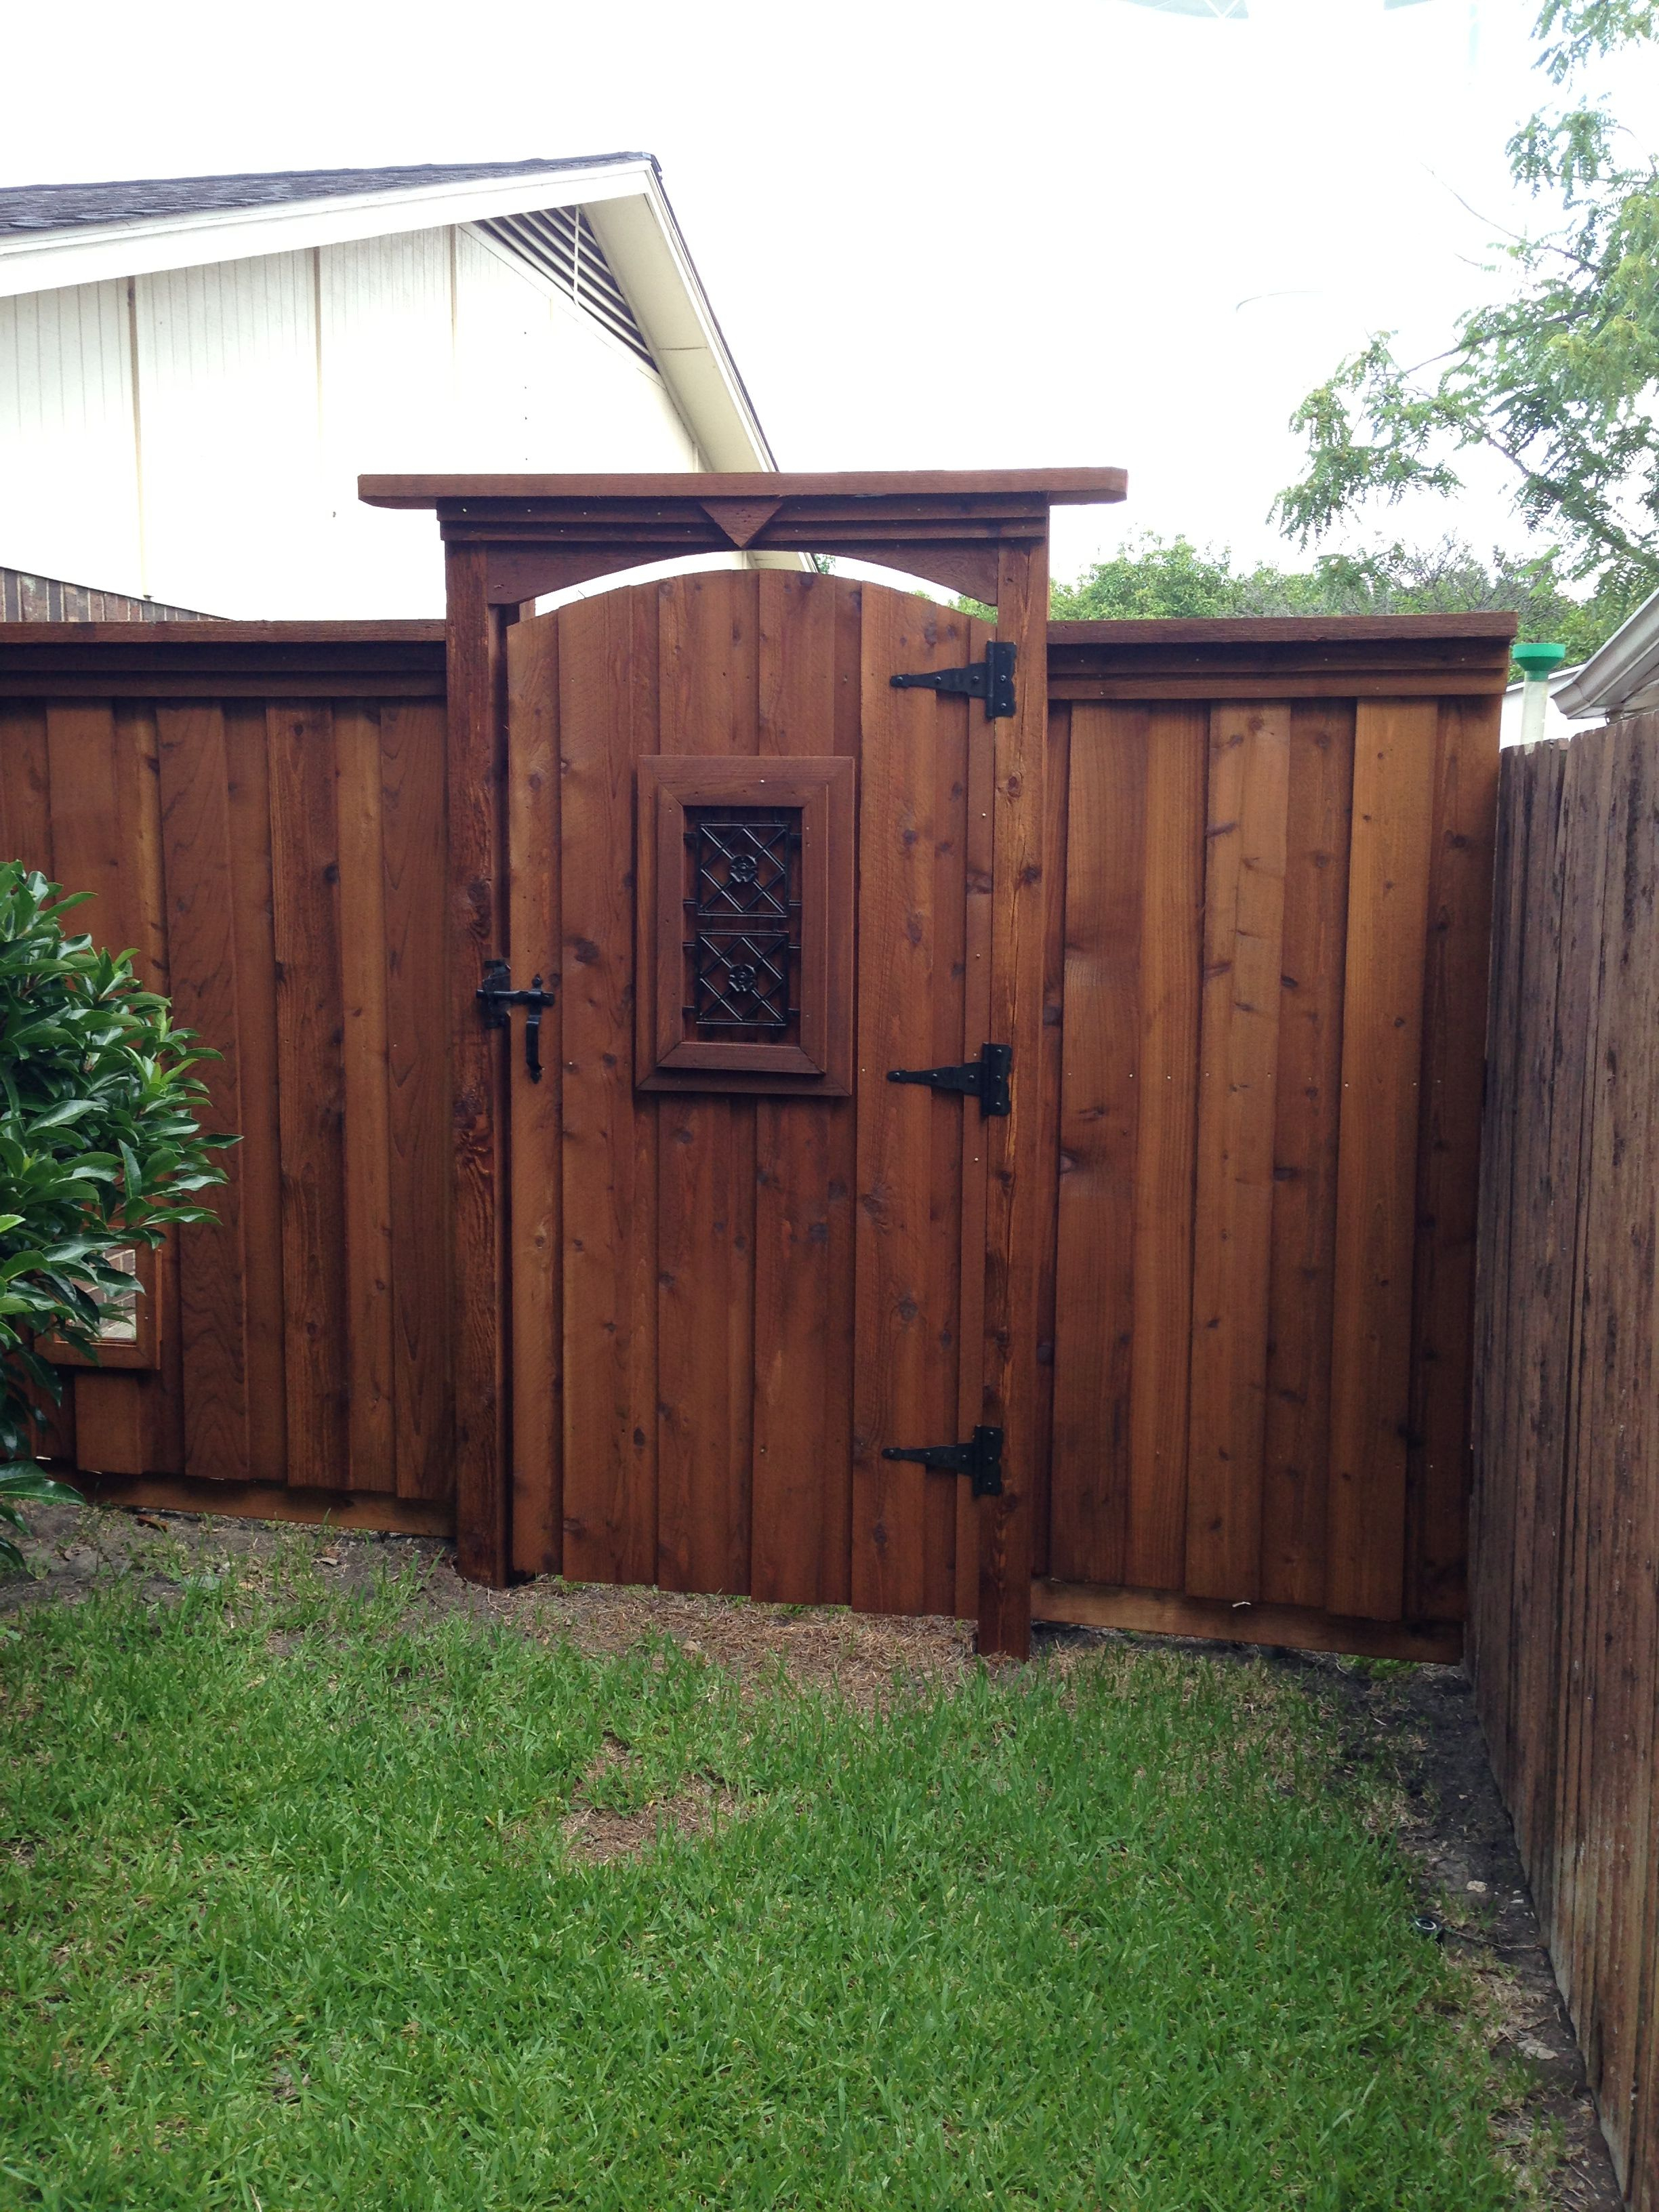 Arched Gate Tall Header Fences In 2019 Fence Gate Wood Fence throughout Backyard Fence Gate